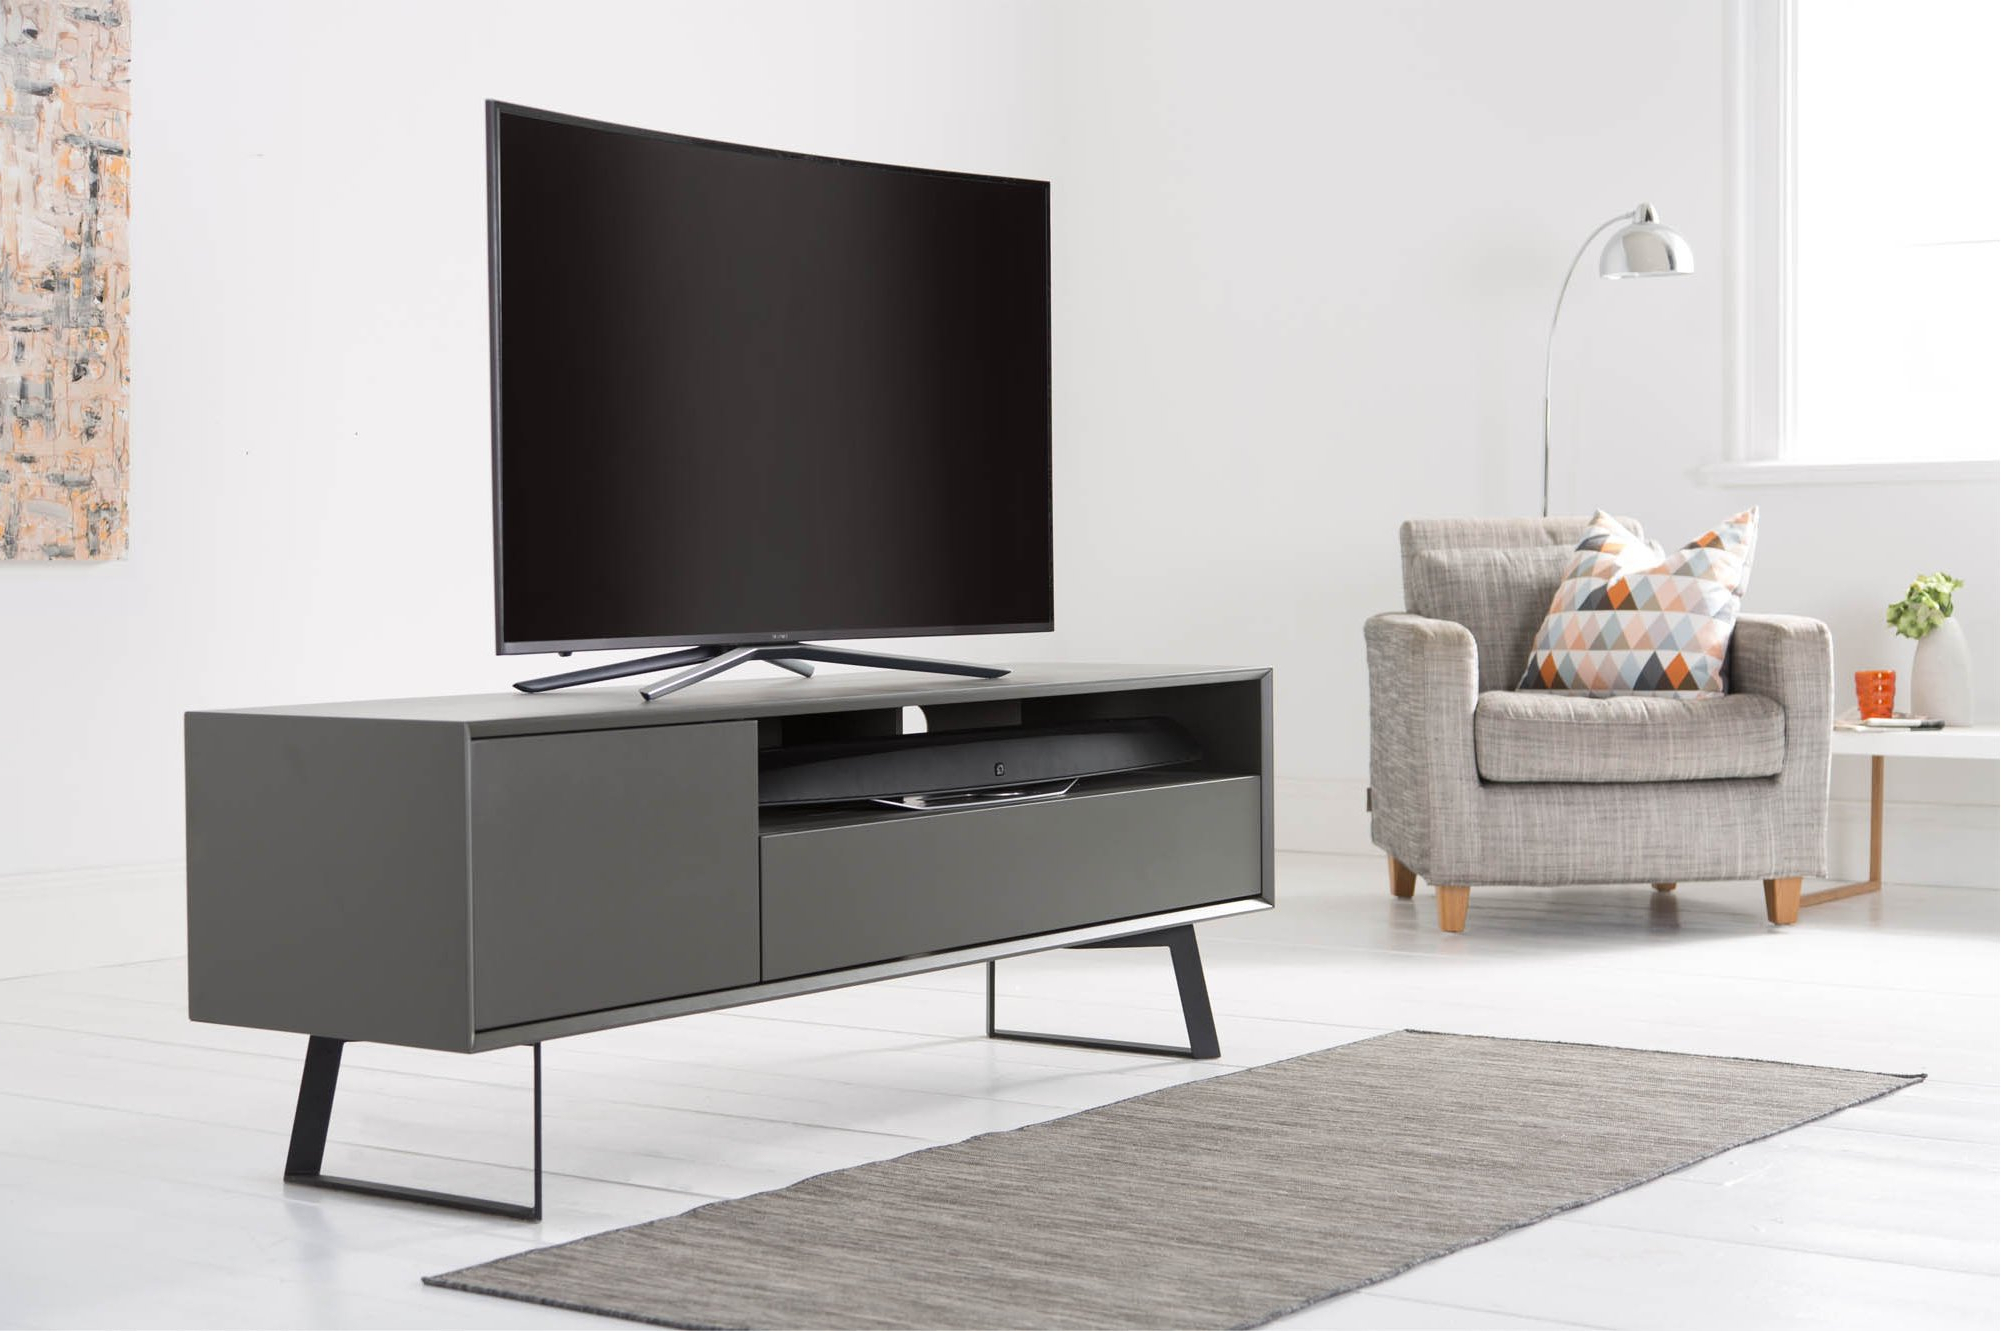 Current Alphason Adca1600 Gry Tv Stands In Grey Tv Stands (View 2 of 20)